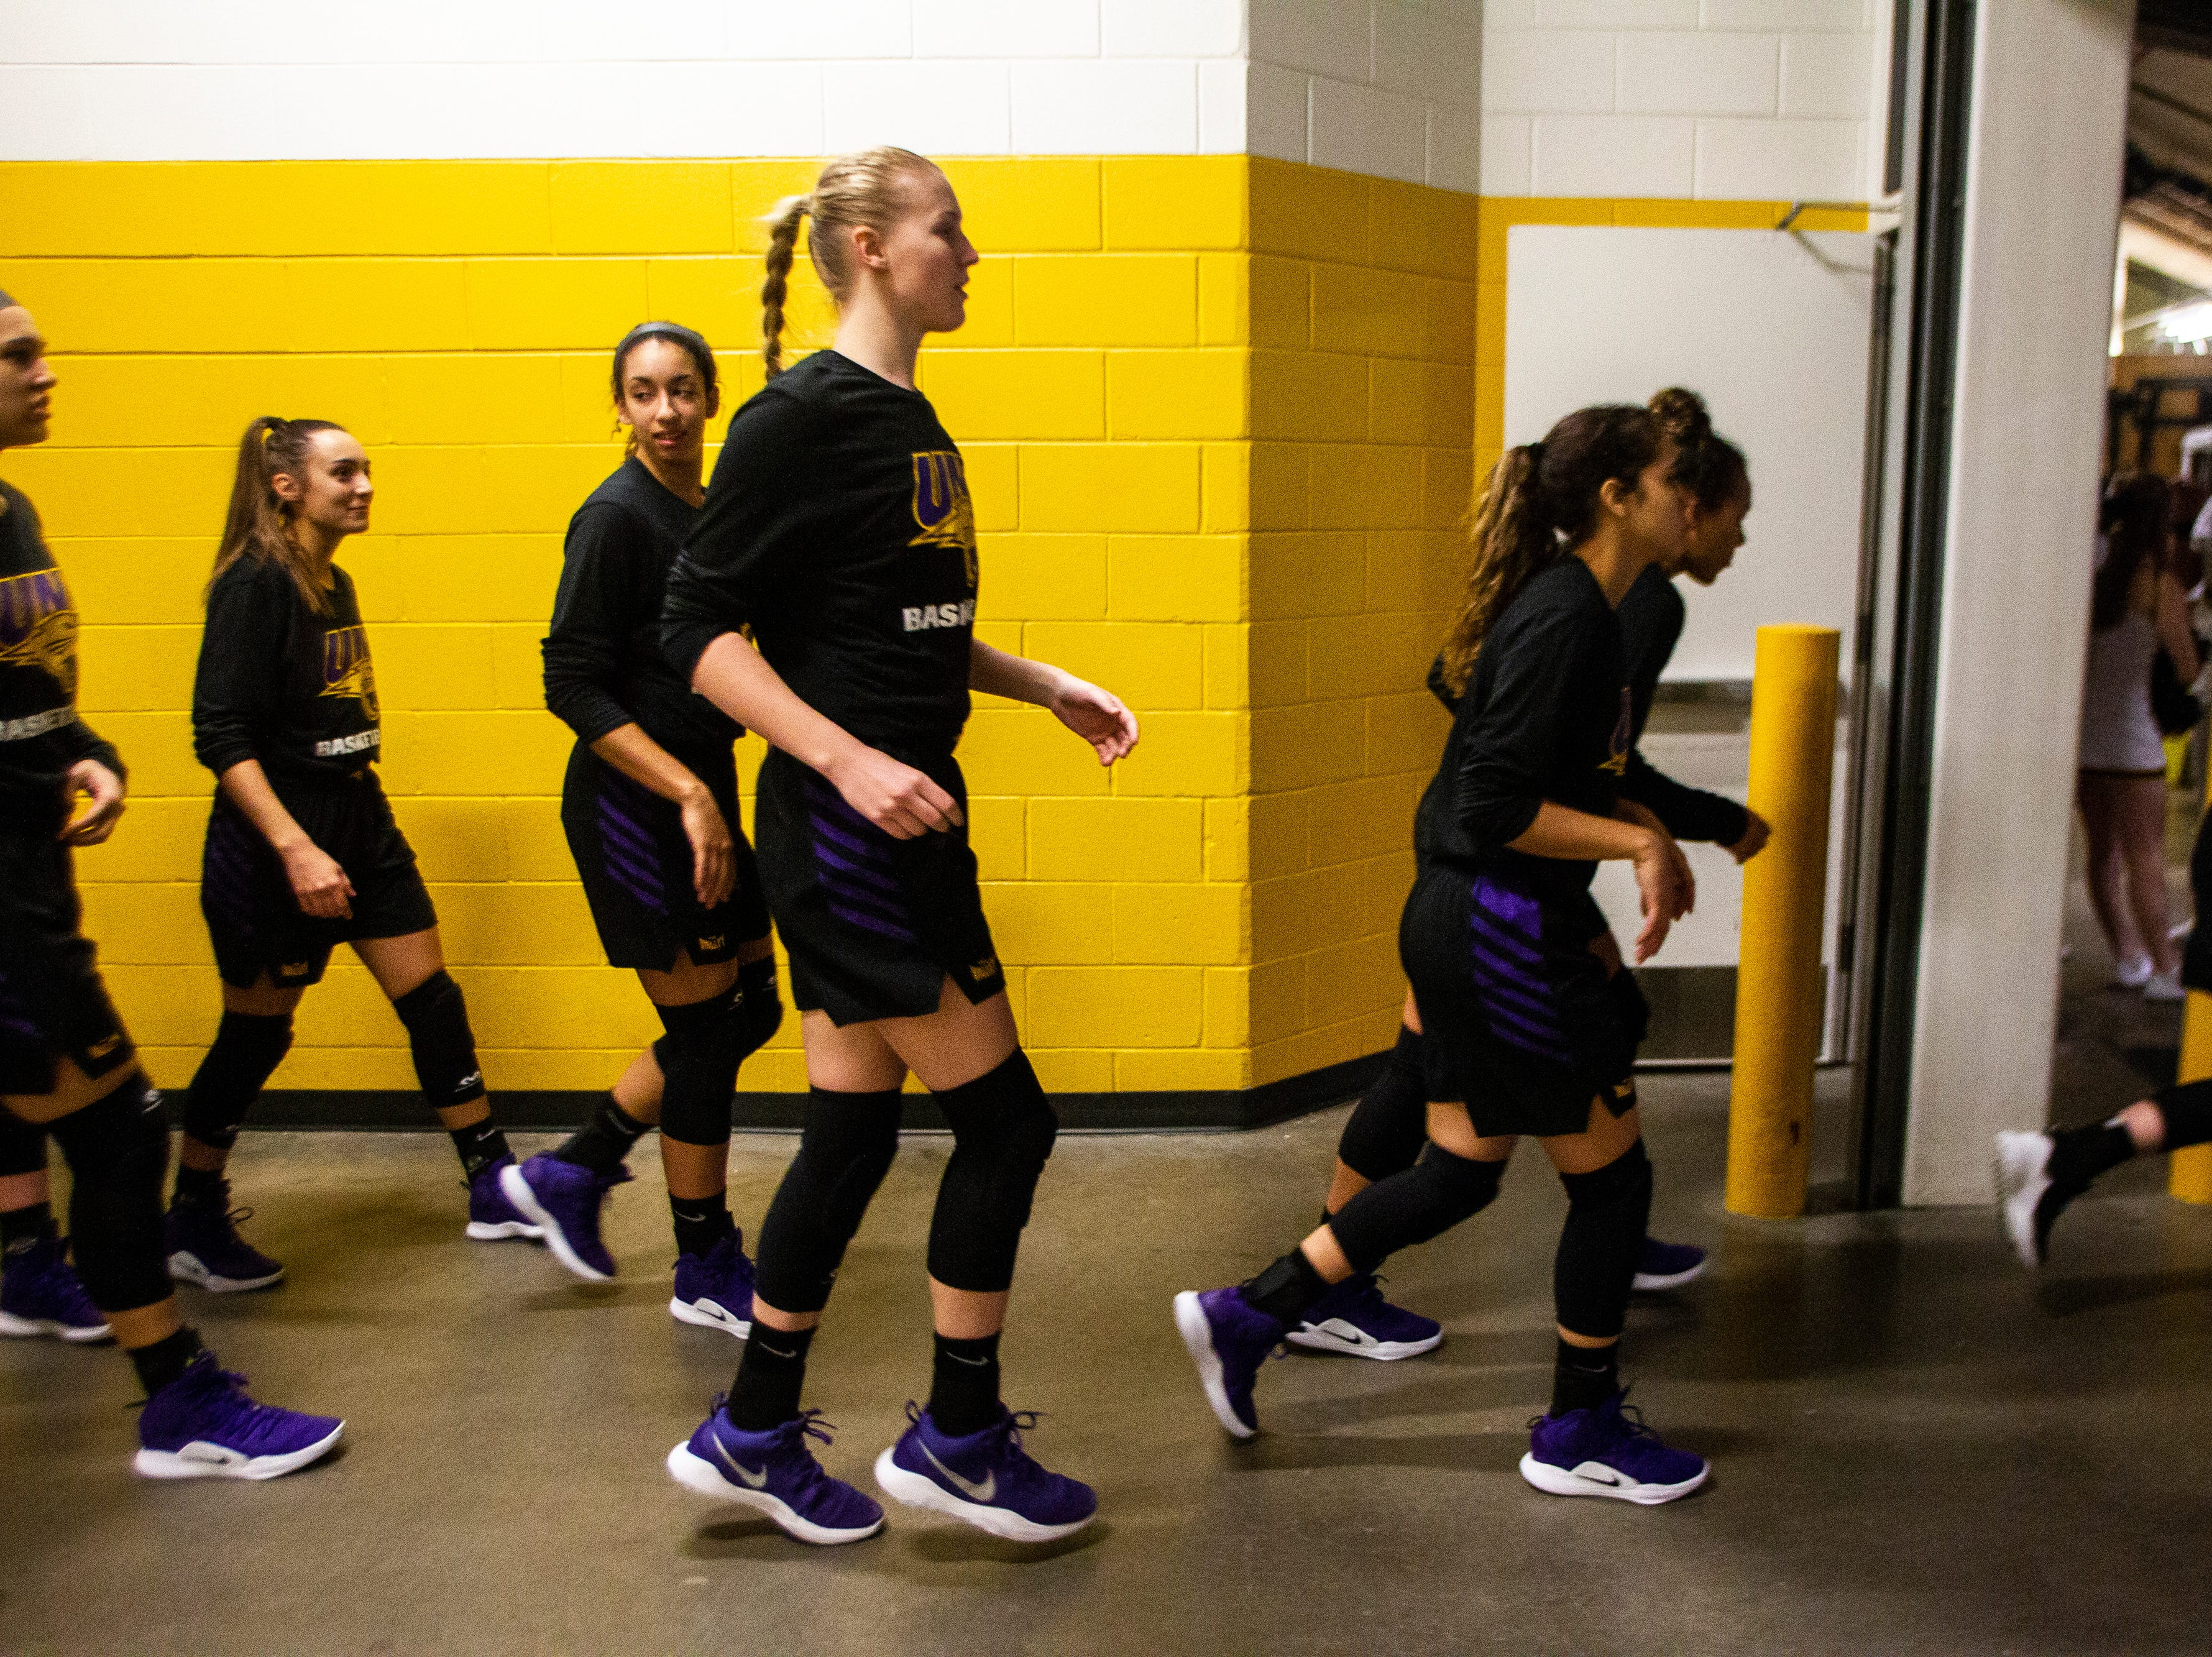 Northern Iowa Panthers run out onto the court during a NCAA women's basketball game on Sunday, Dec. 16, 2018, at Carver-Hawkeye Arena in Iowa City.